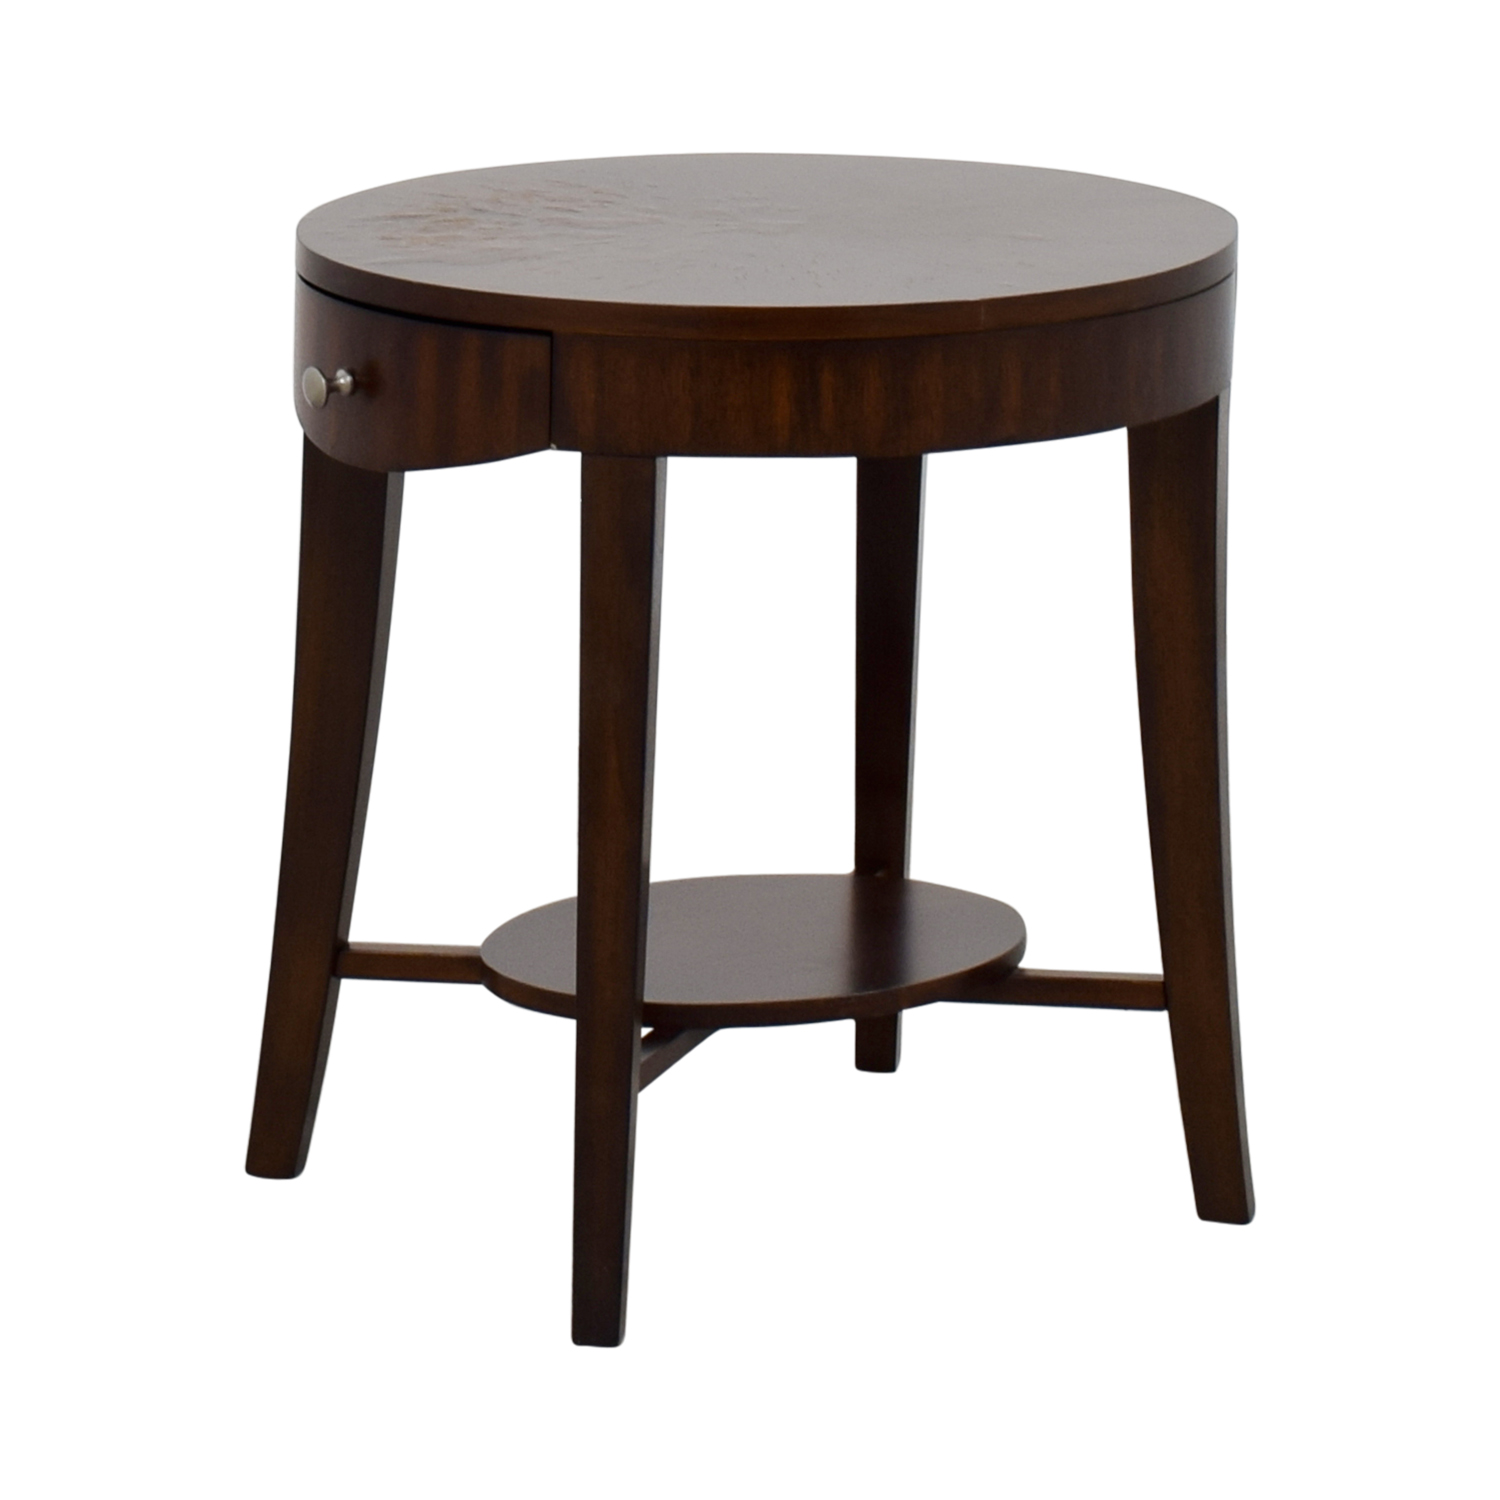 Circular End Tables 71 Off Raymour And Flannigan Raymour And Flanigan Round